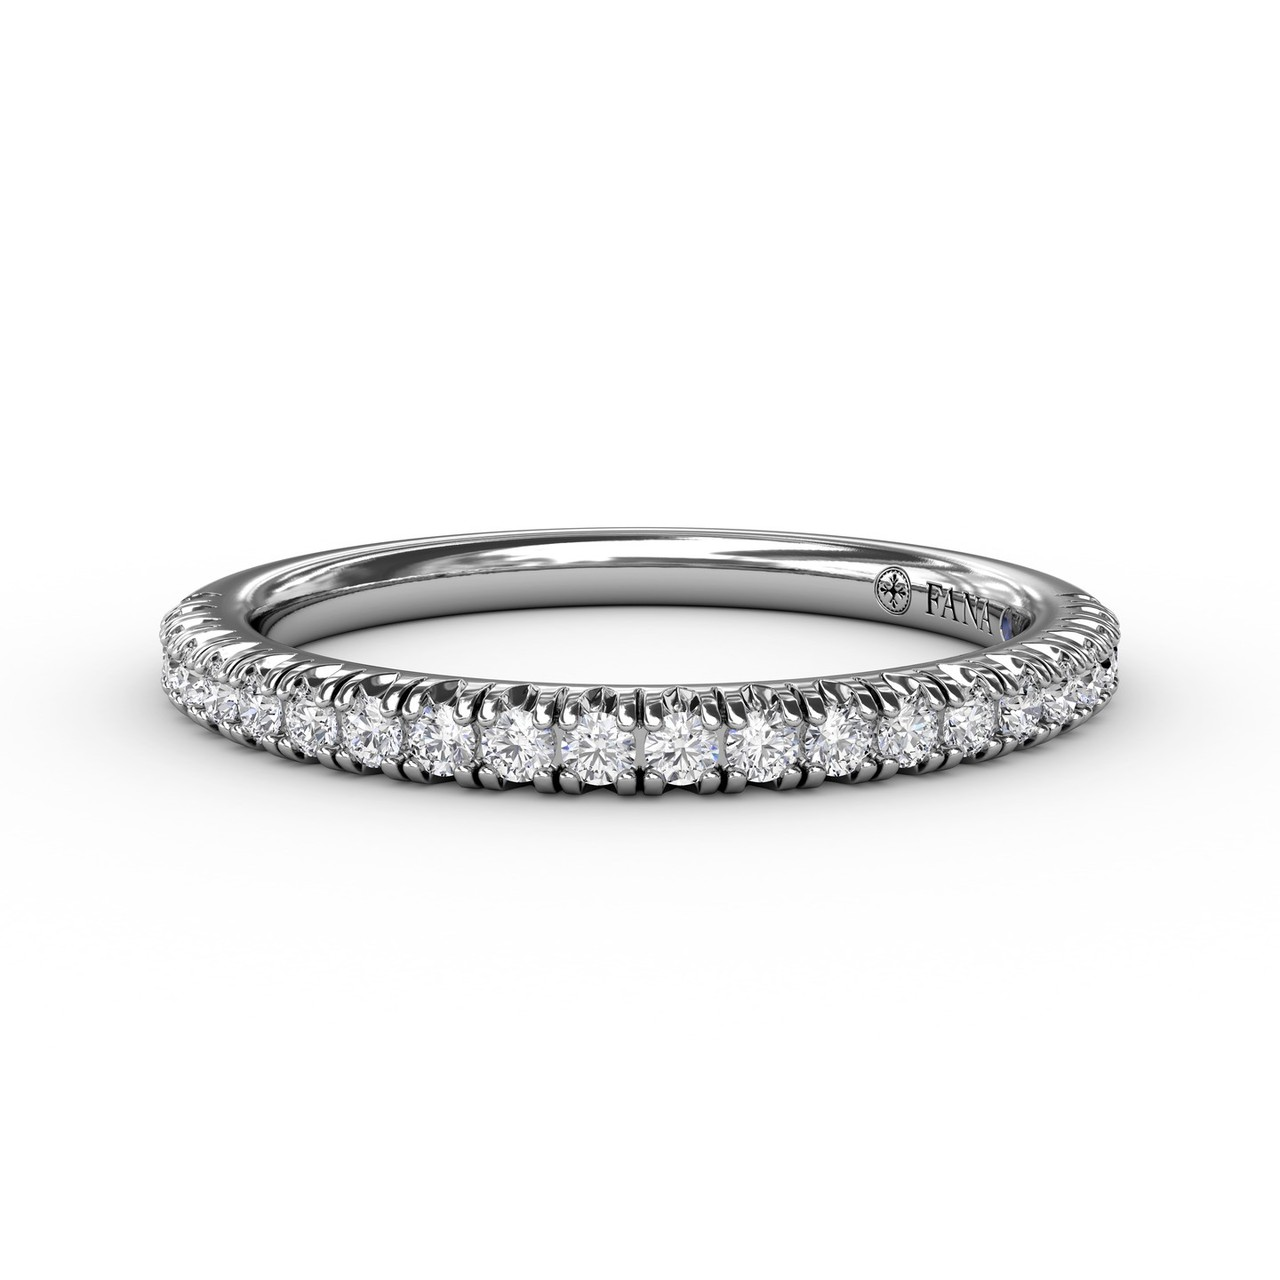 Delicate Modern Pave Anniversary Band